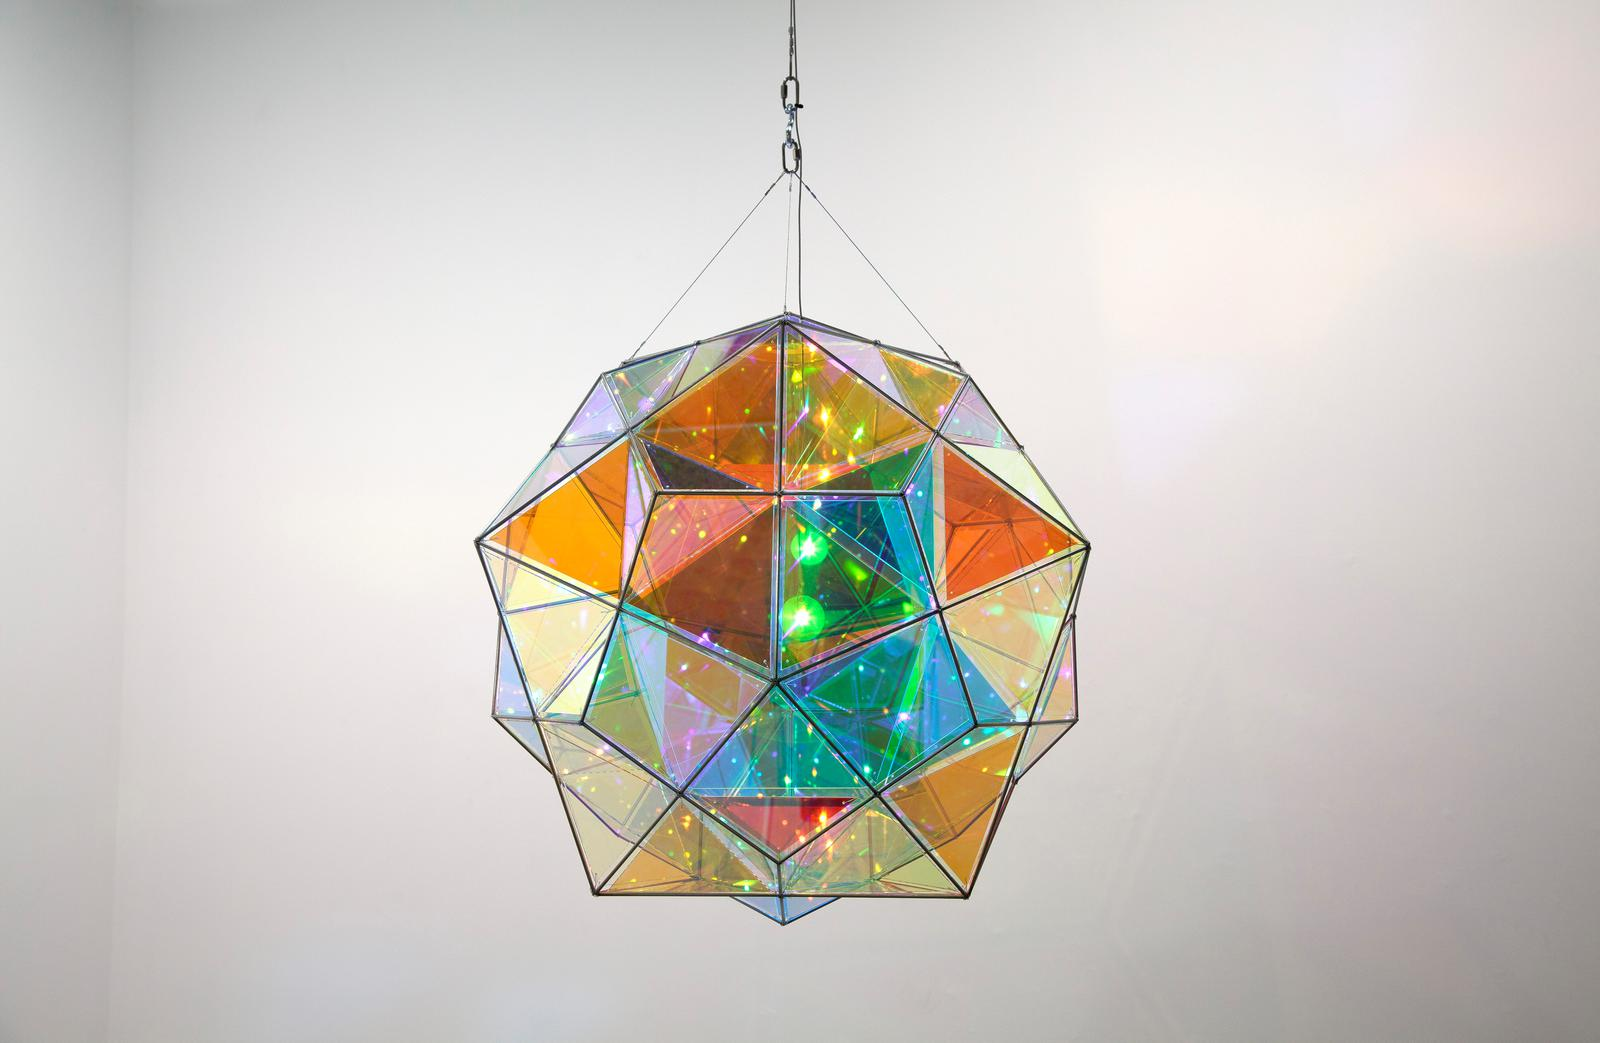 Chandelier Lamp Infinite Colour Doubl... • Artwork • Studio Olafur Eliasson